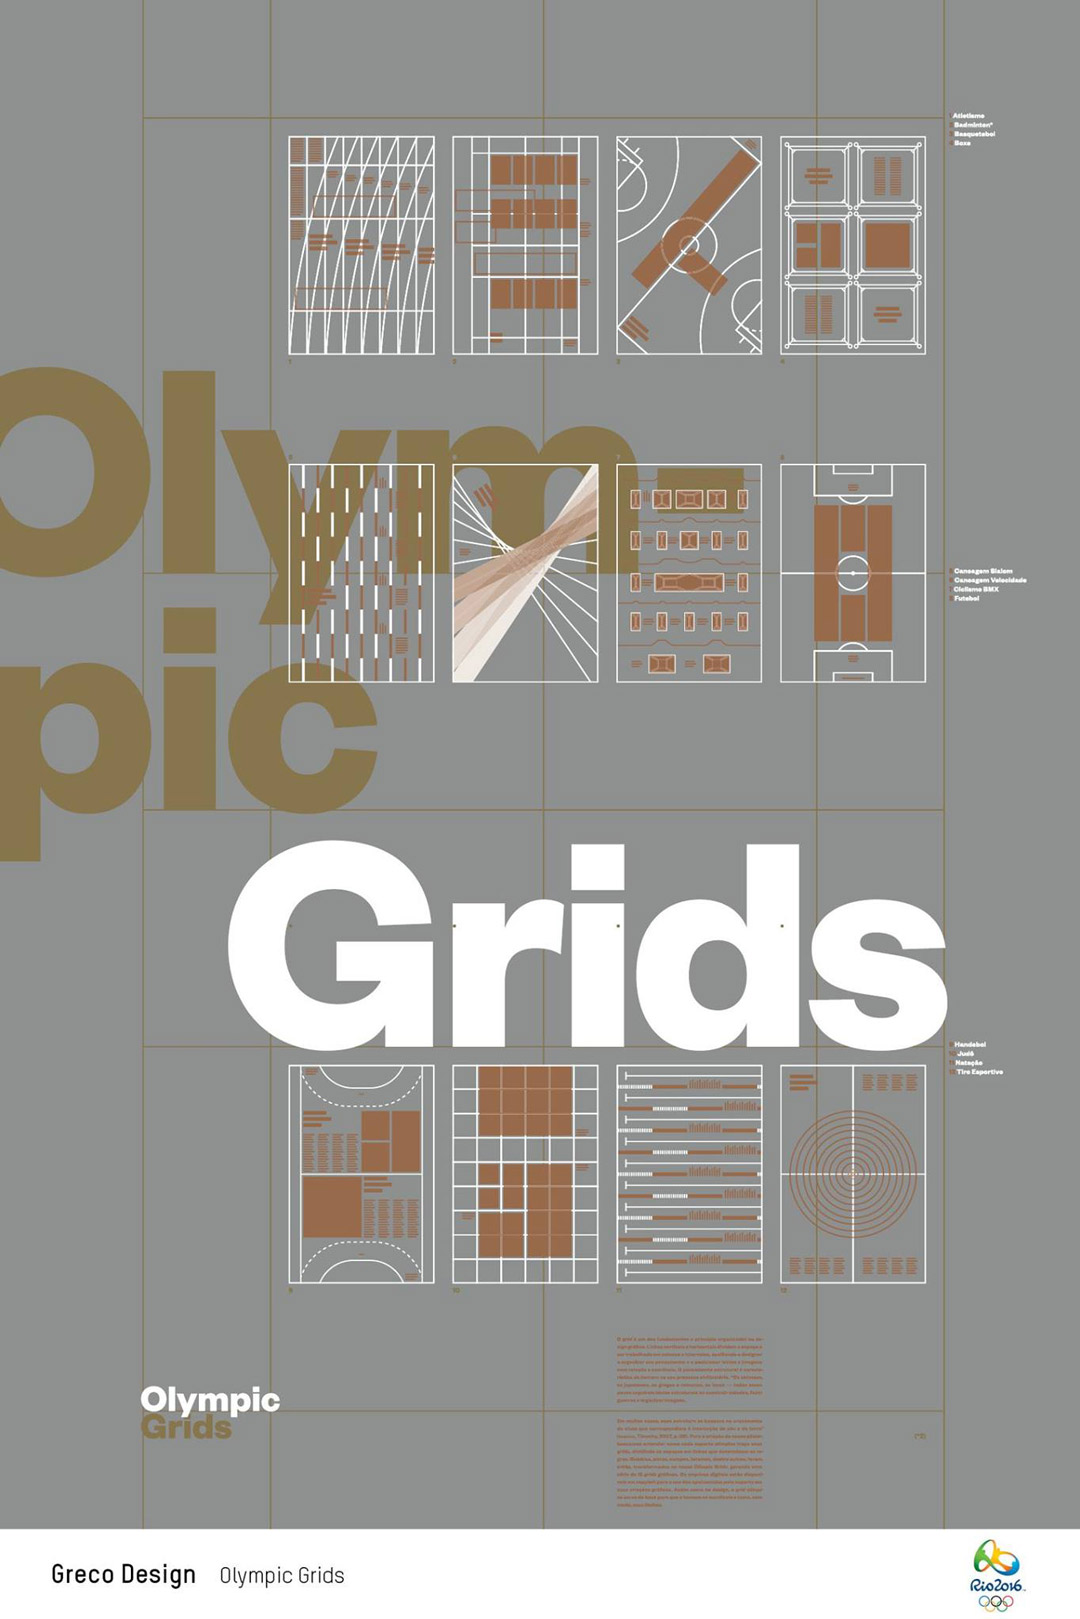 Olympic Grids by Greco Design